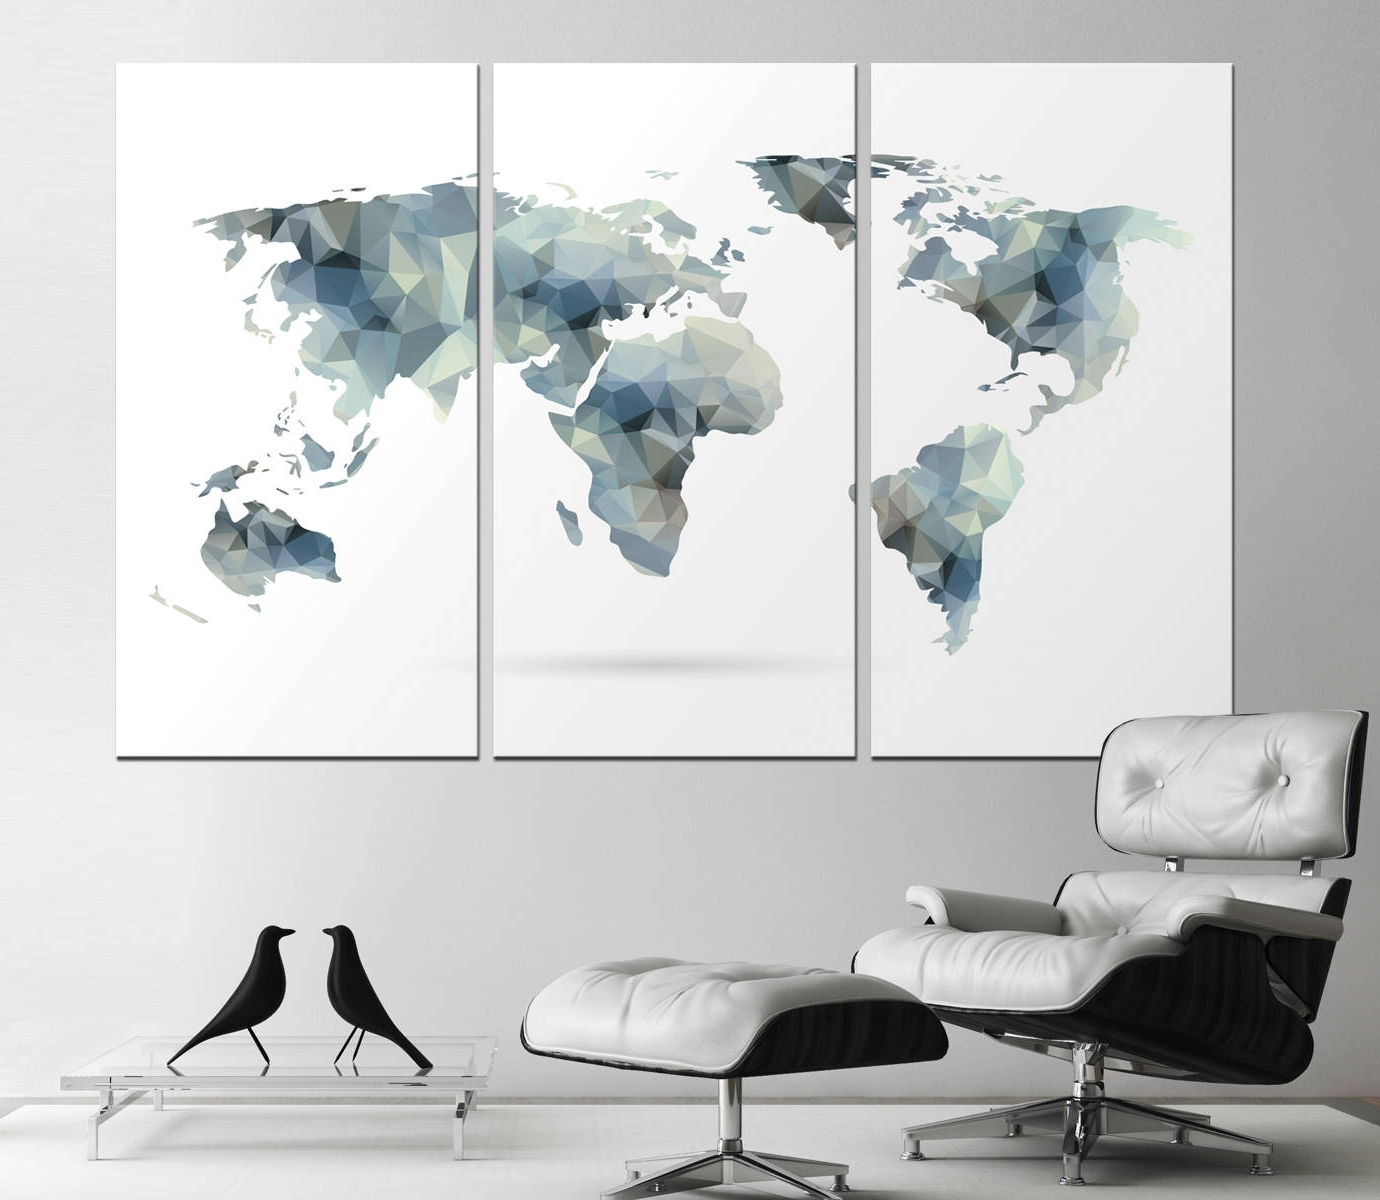 Large Geometric World Map Print, Abstract World Map Canvas Panels Pertaining To Famous Abstract World Map Wall Art (View 1 of 15)